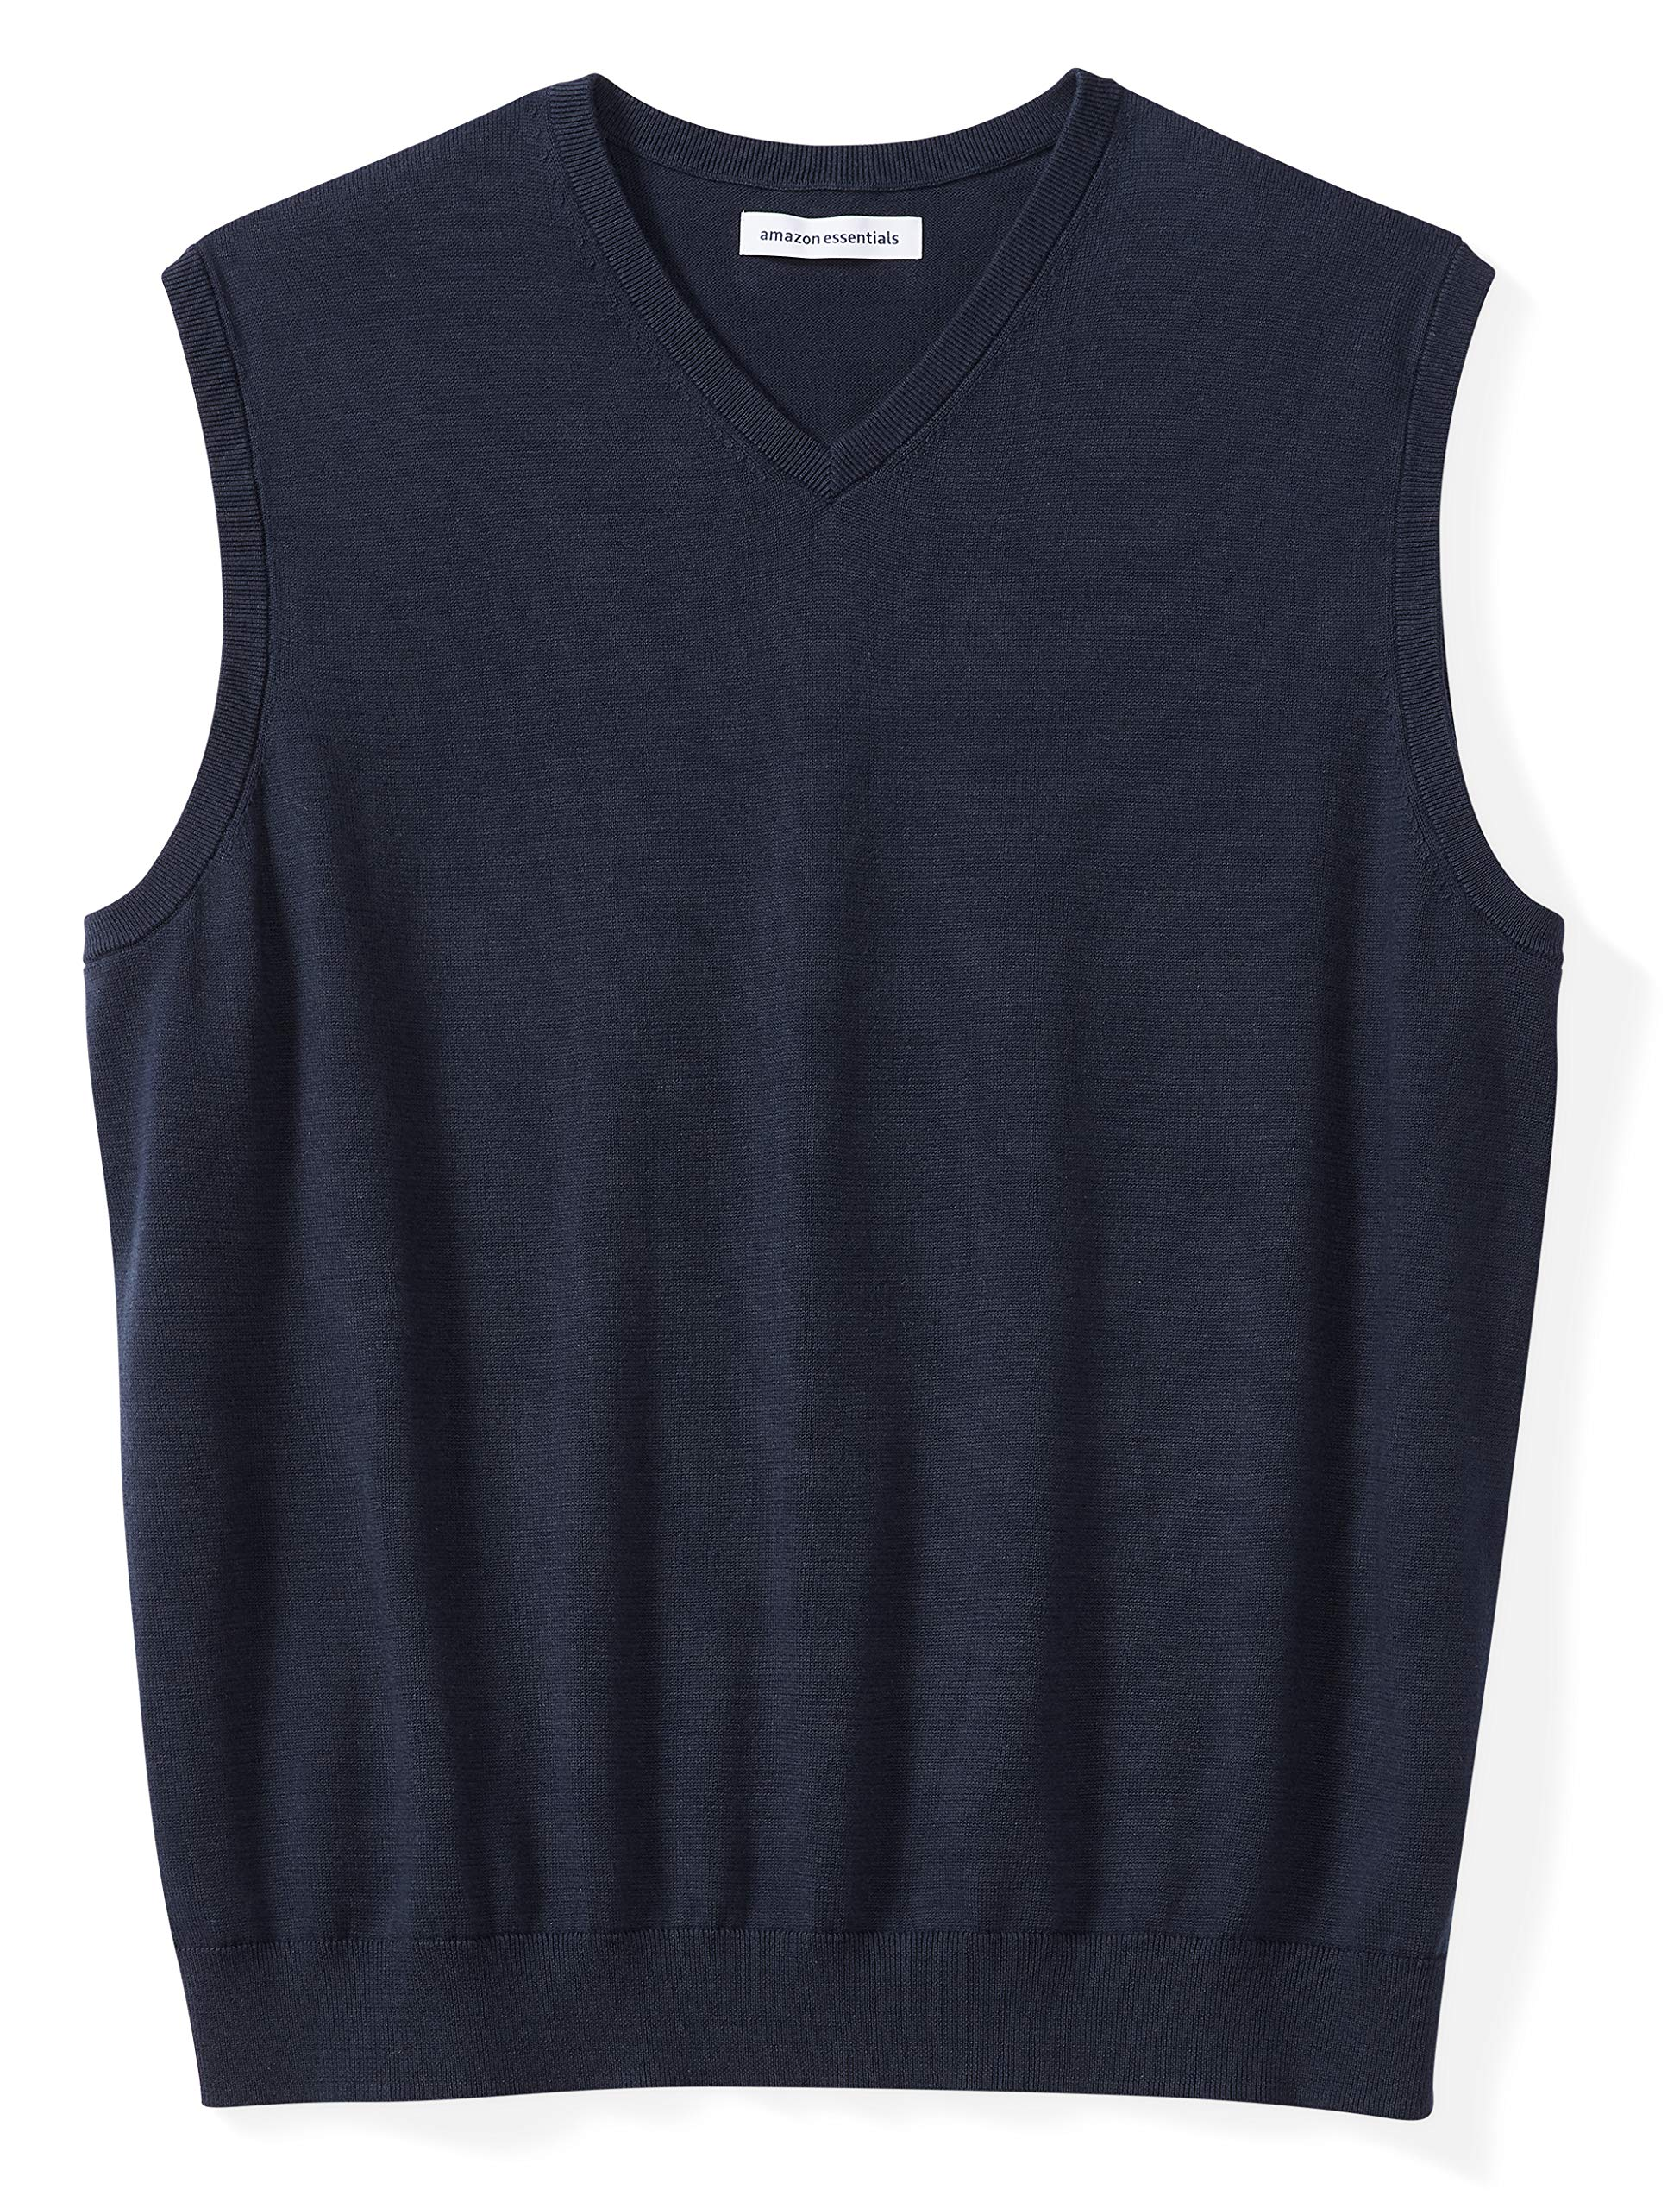 656df52e6ff4a7 Amazon Essentials Men s Big   Tall V-Neck Sweater Vest fit by DXL product  image